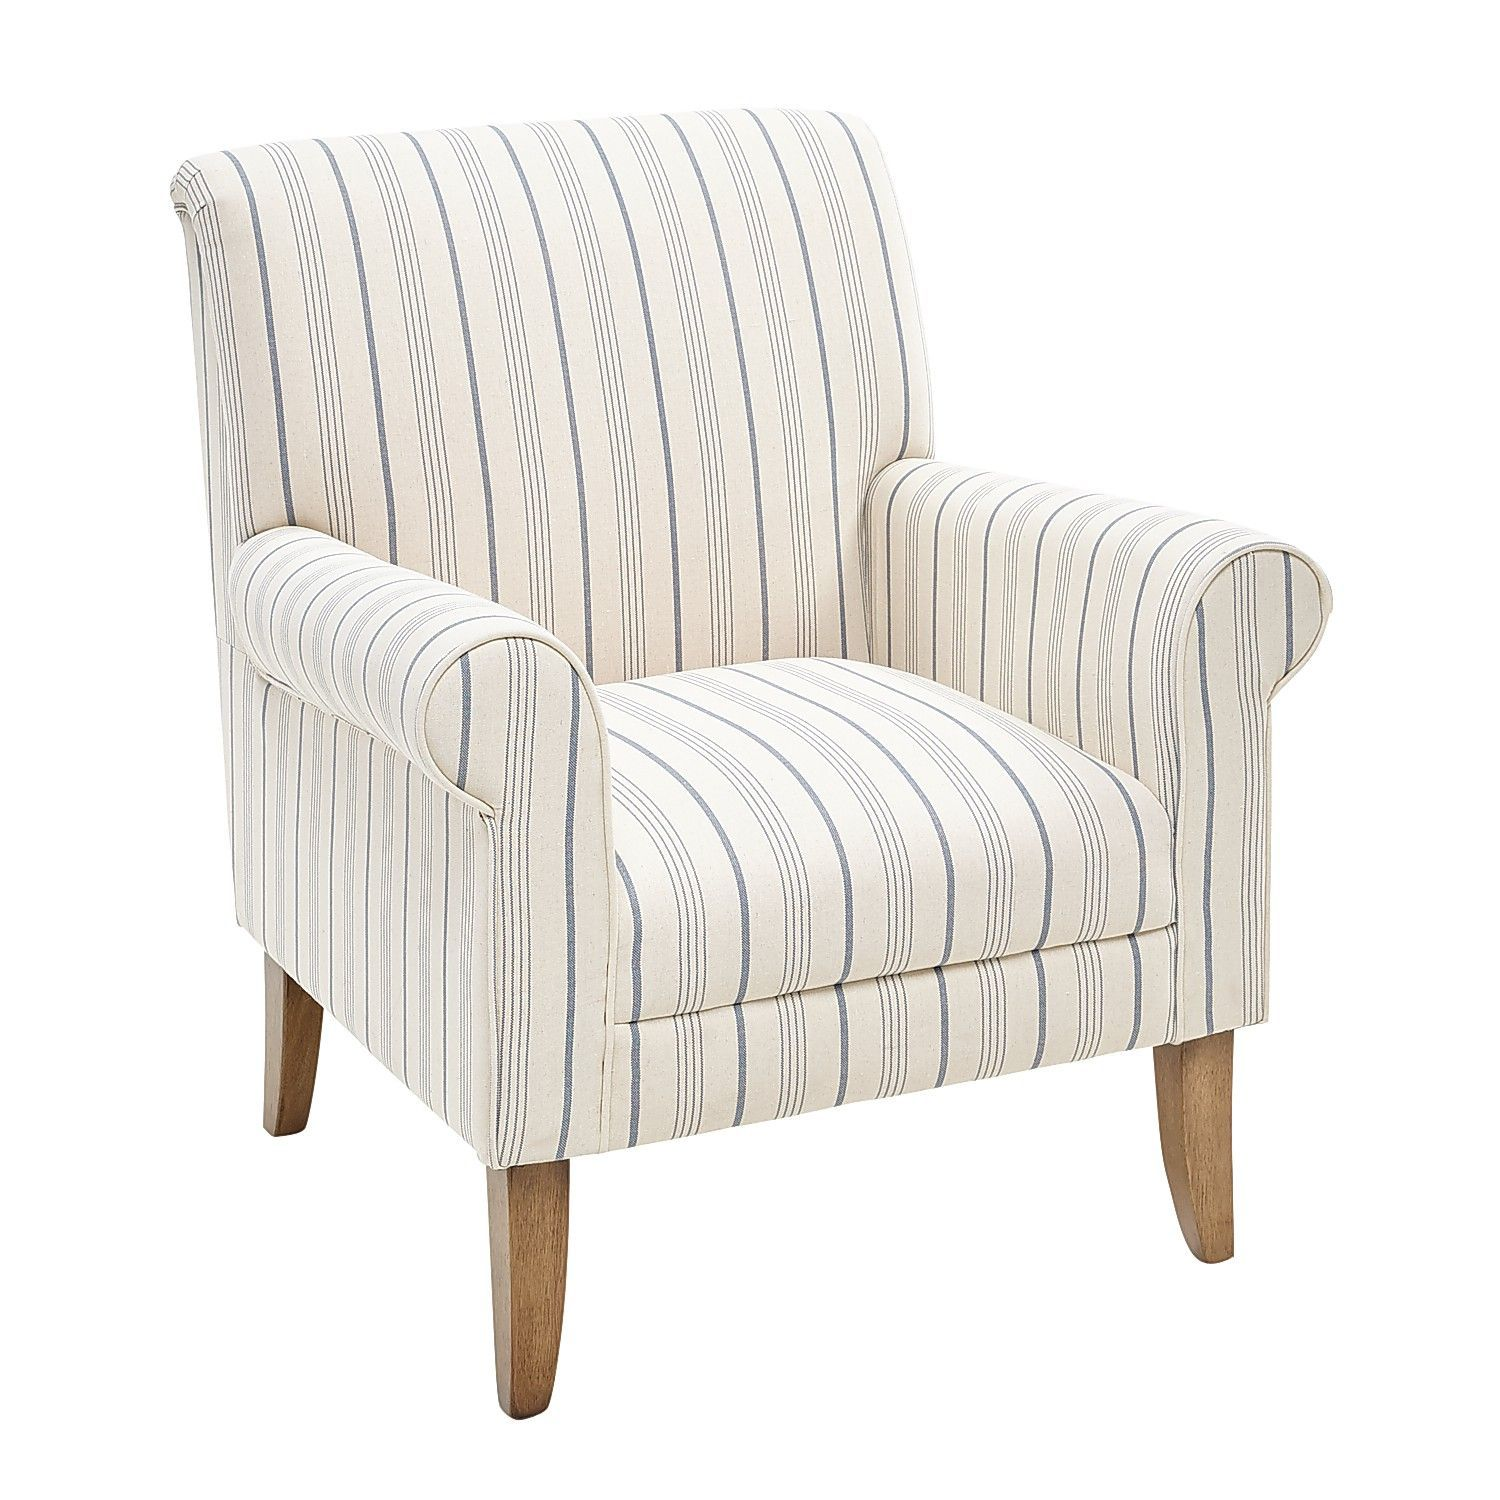 Best Laila Blue Paisley Chair White Armchair Blue Striped 400 x 300